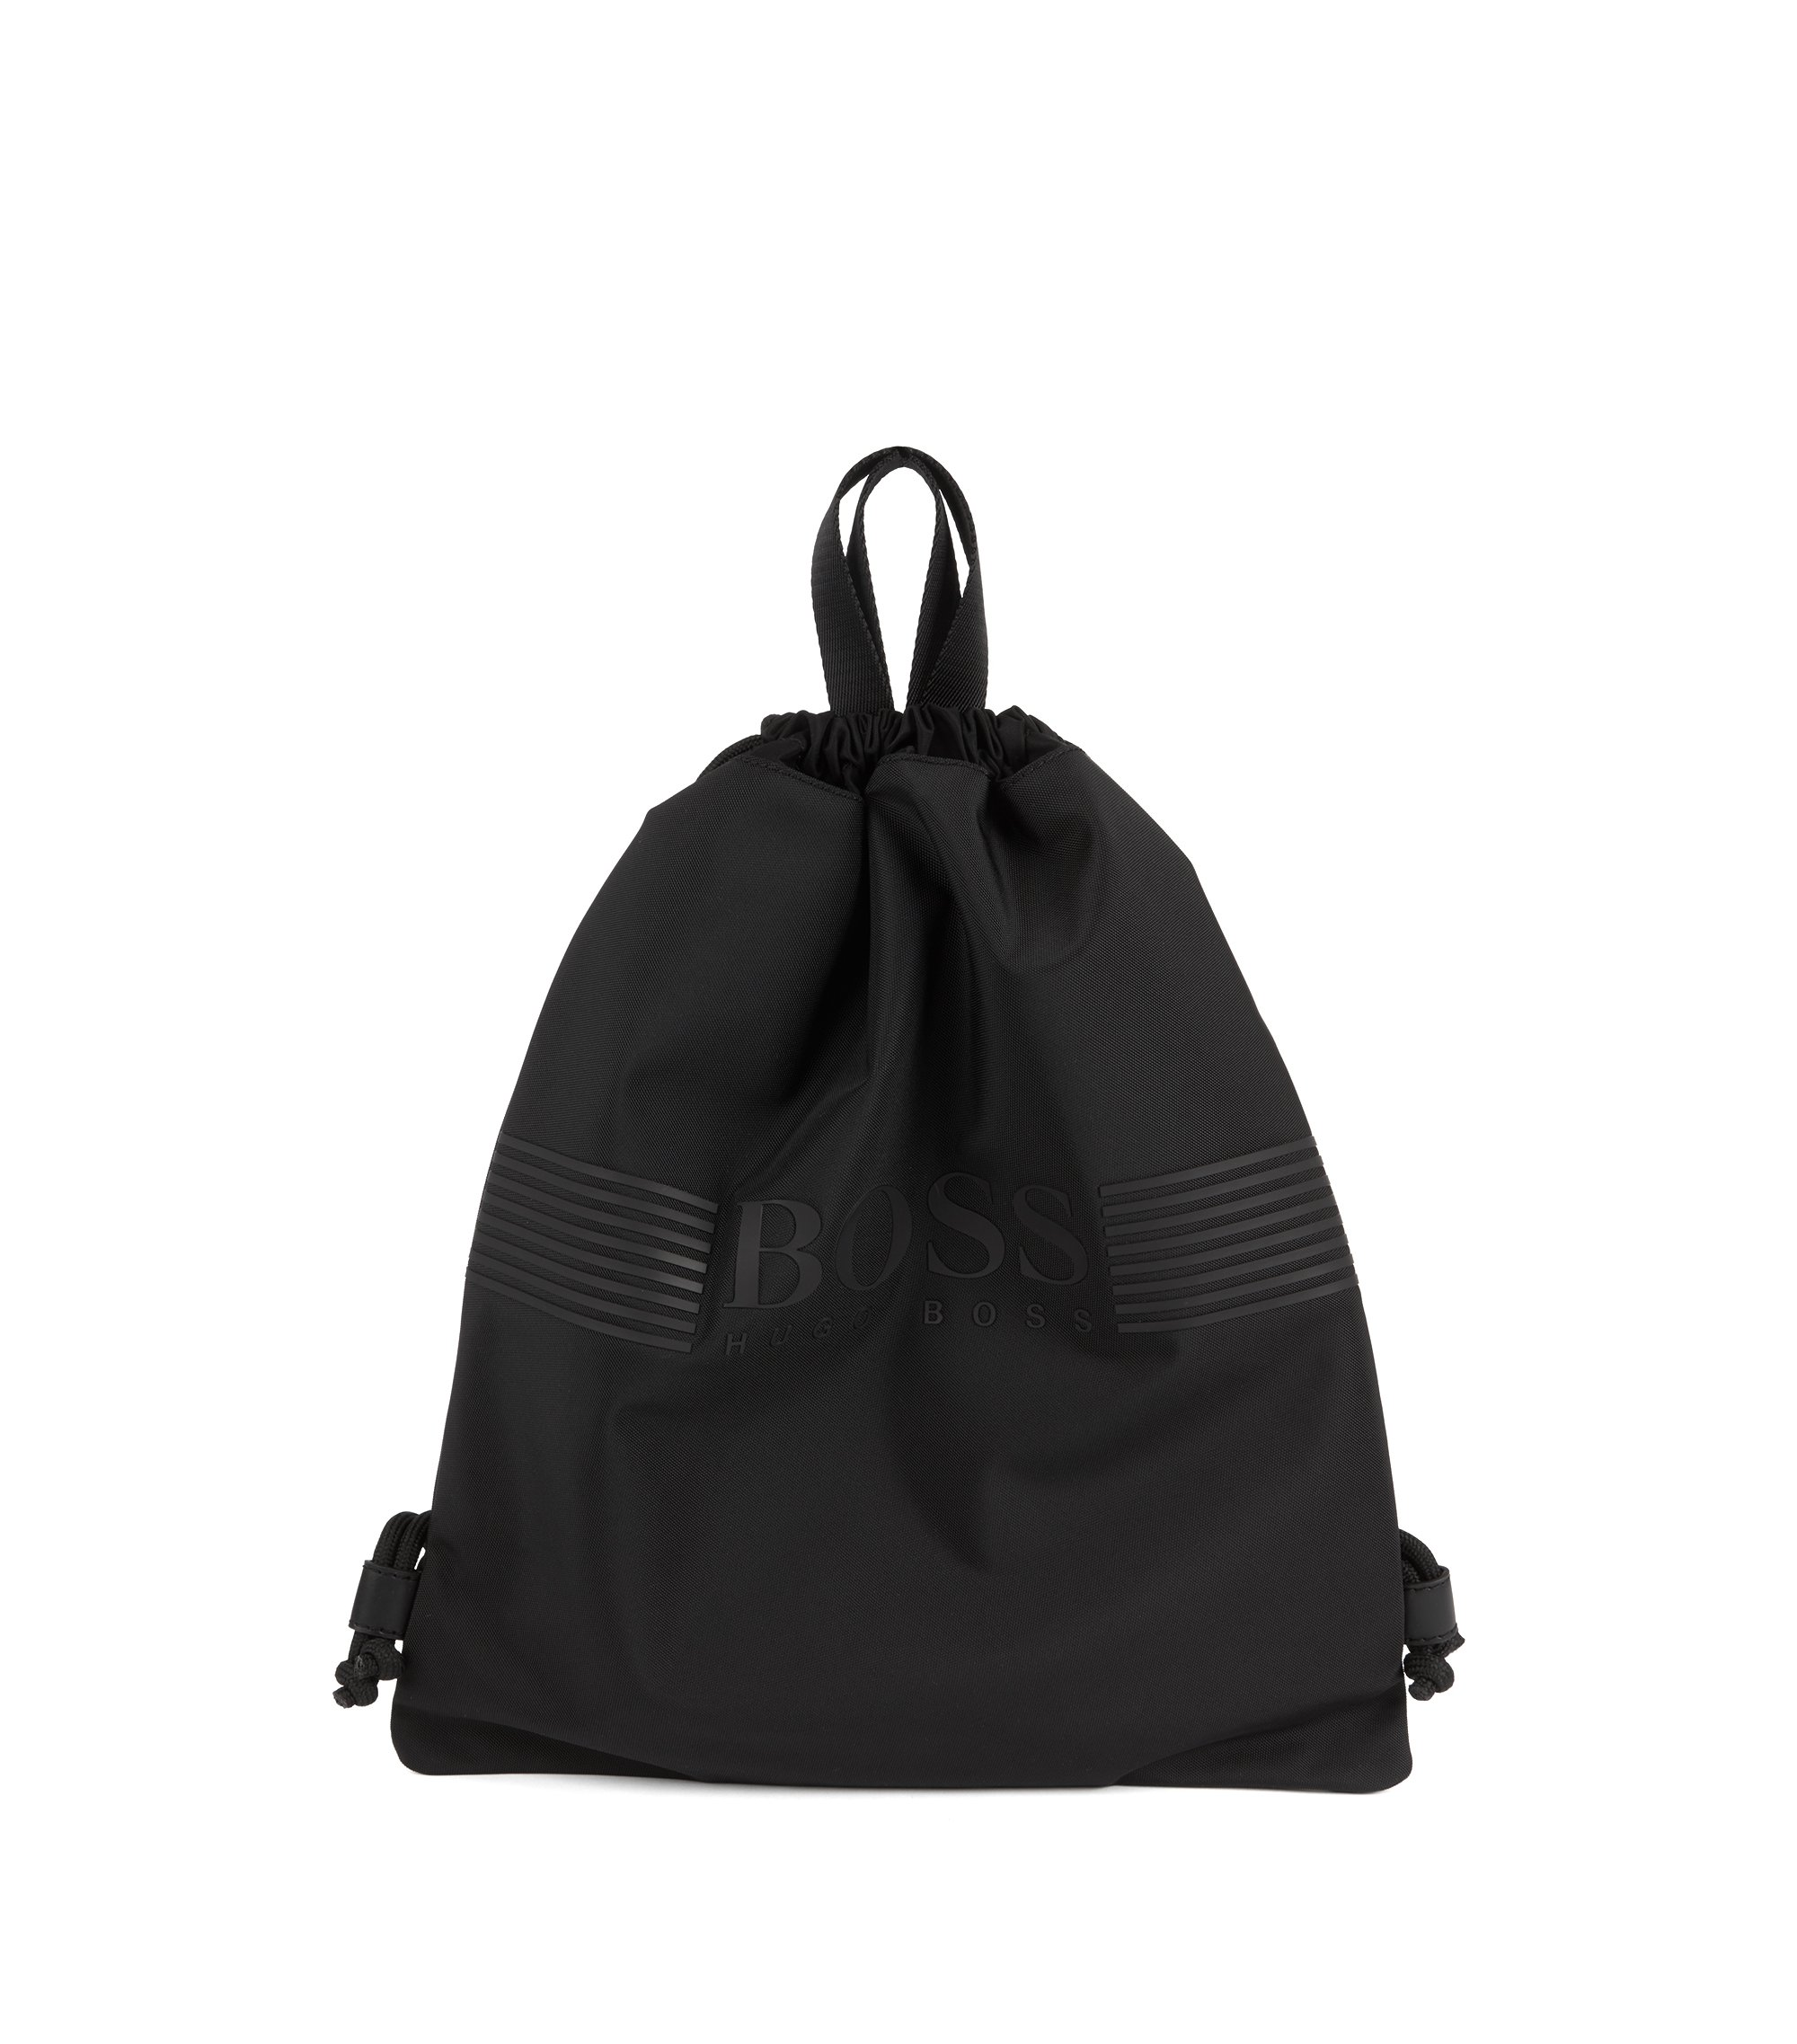 Drawstring backpack in nylon with rubberised logo, Black